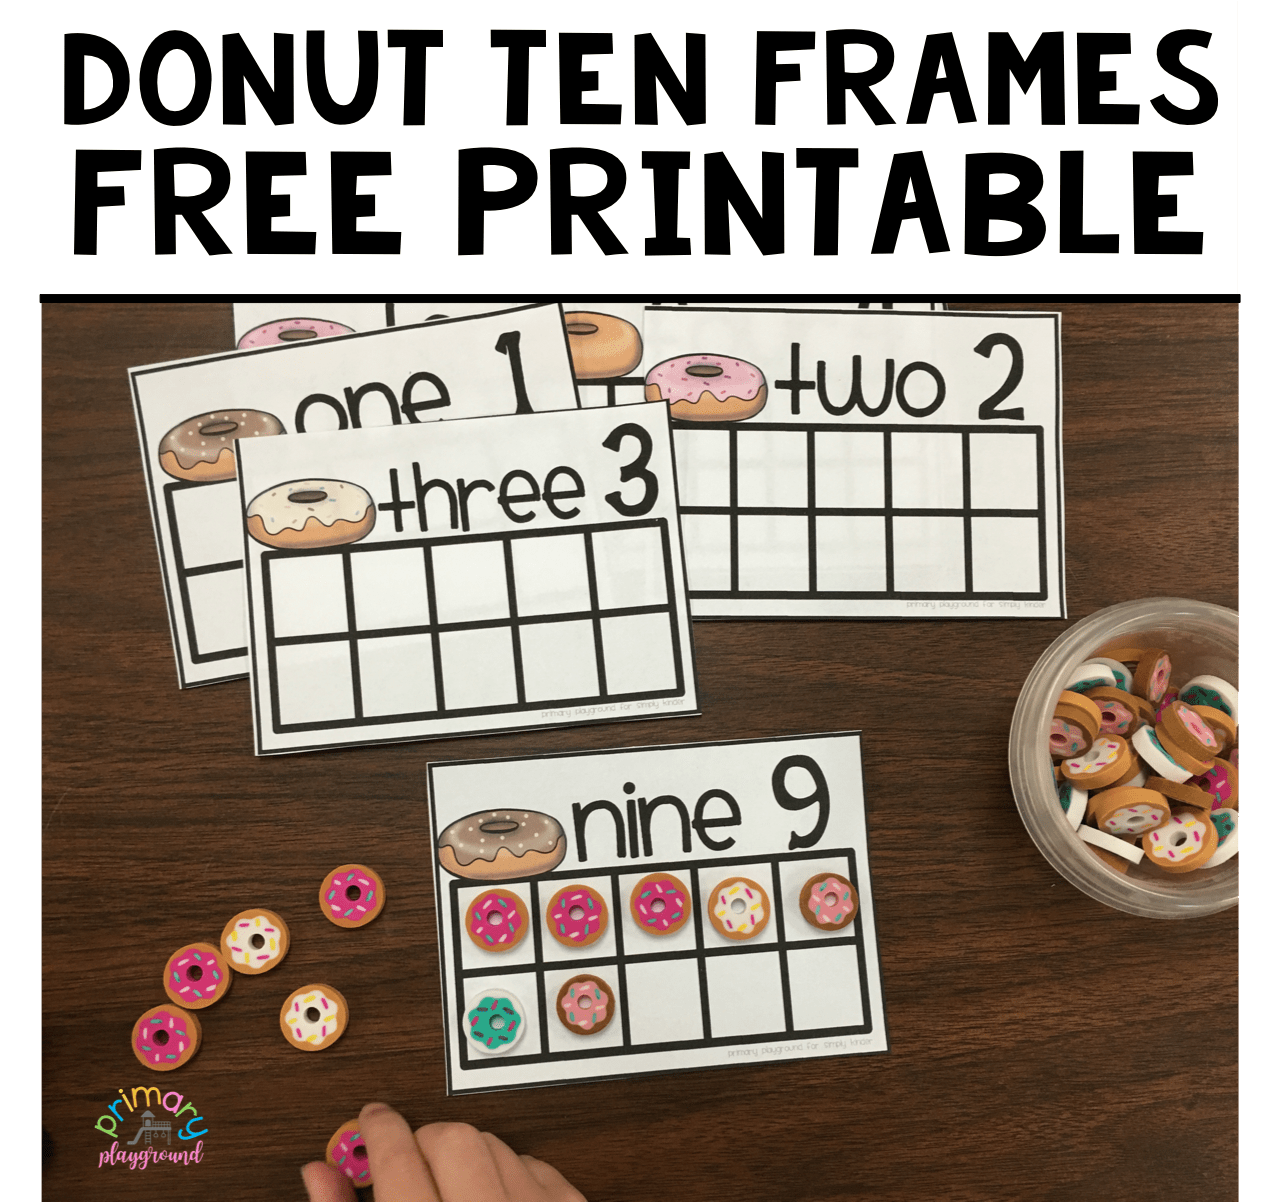 photograph about Free Printable Ten Frames identify Absolutely free Printable Donut 10 Frames - Principal Playground